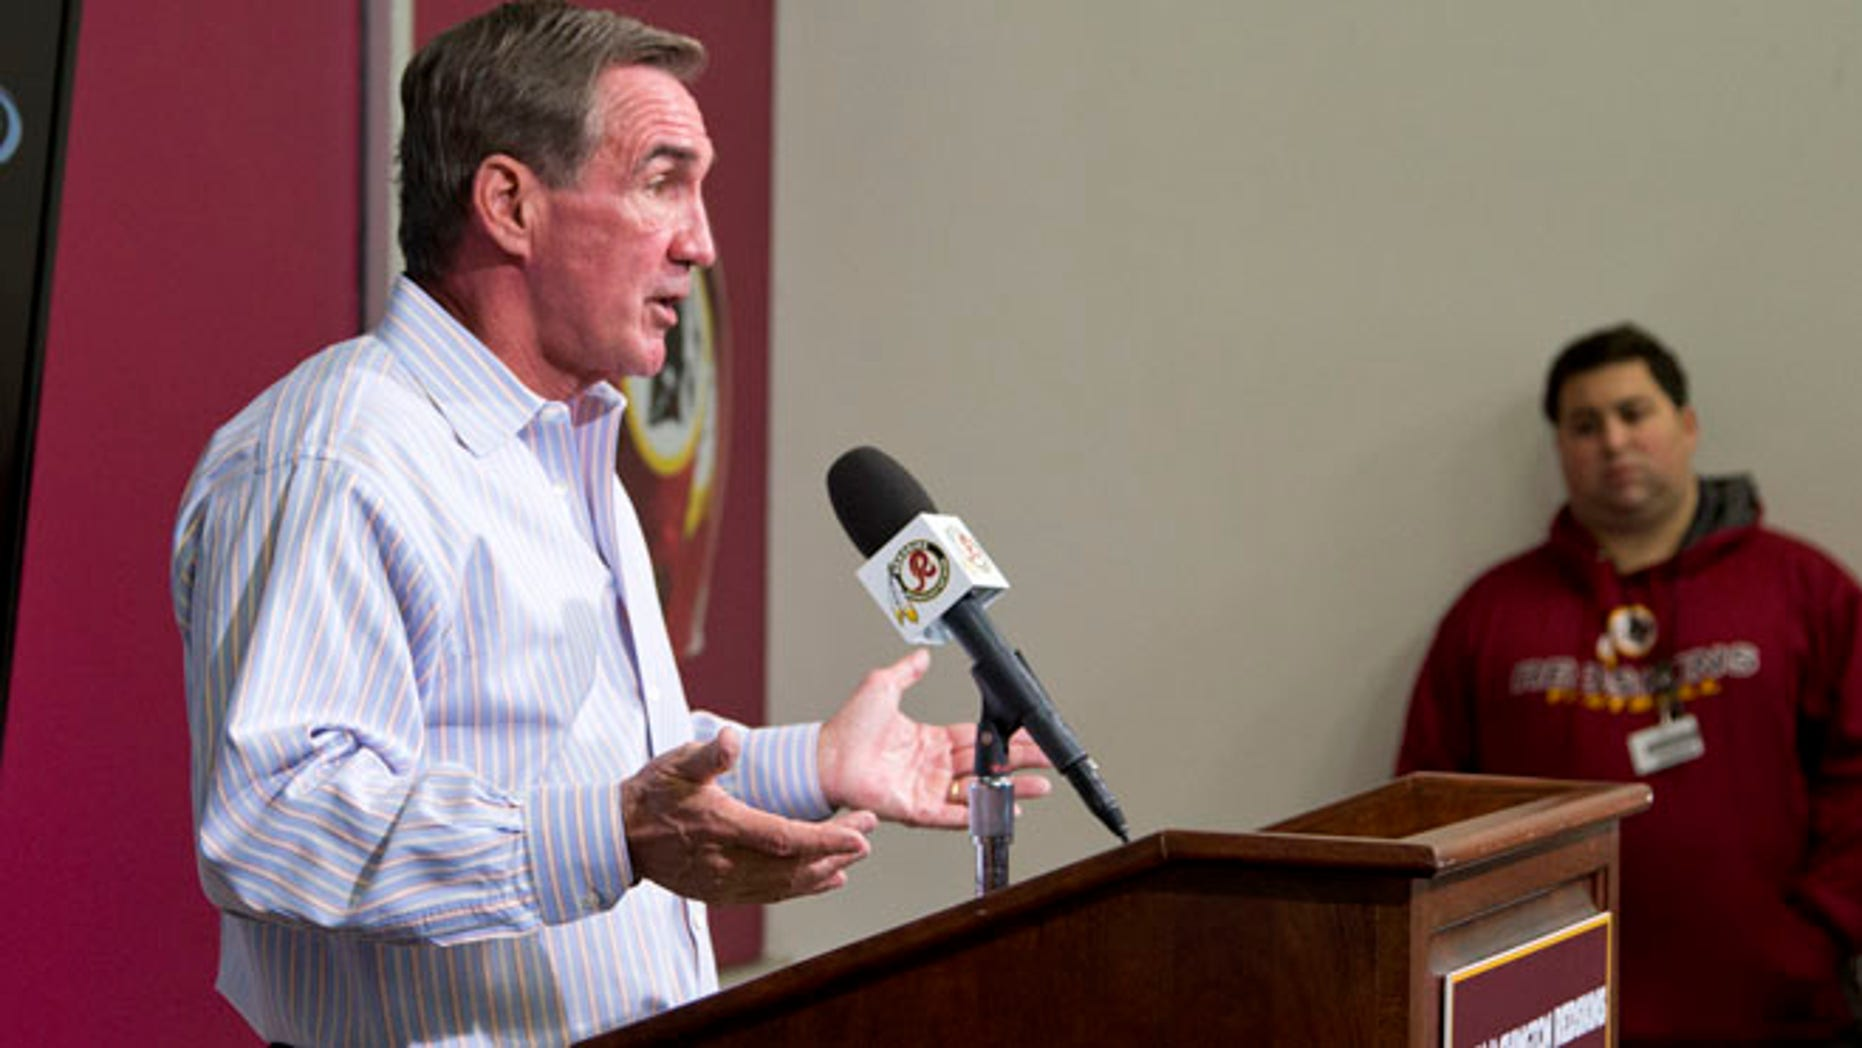 Dec. 30, 2013: Former Washington Redskins head coach Mike Shanahan delivers a statement at an NFL football news conference in Ashburn, Va., after being fired.